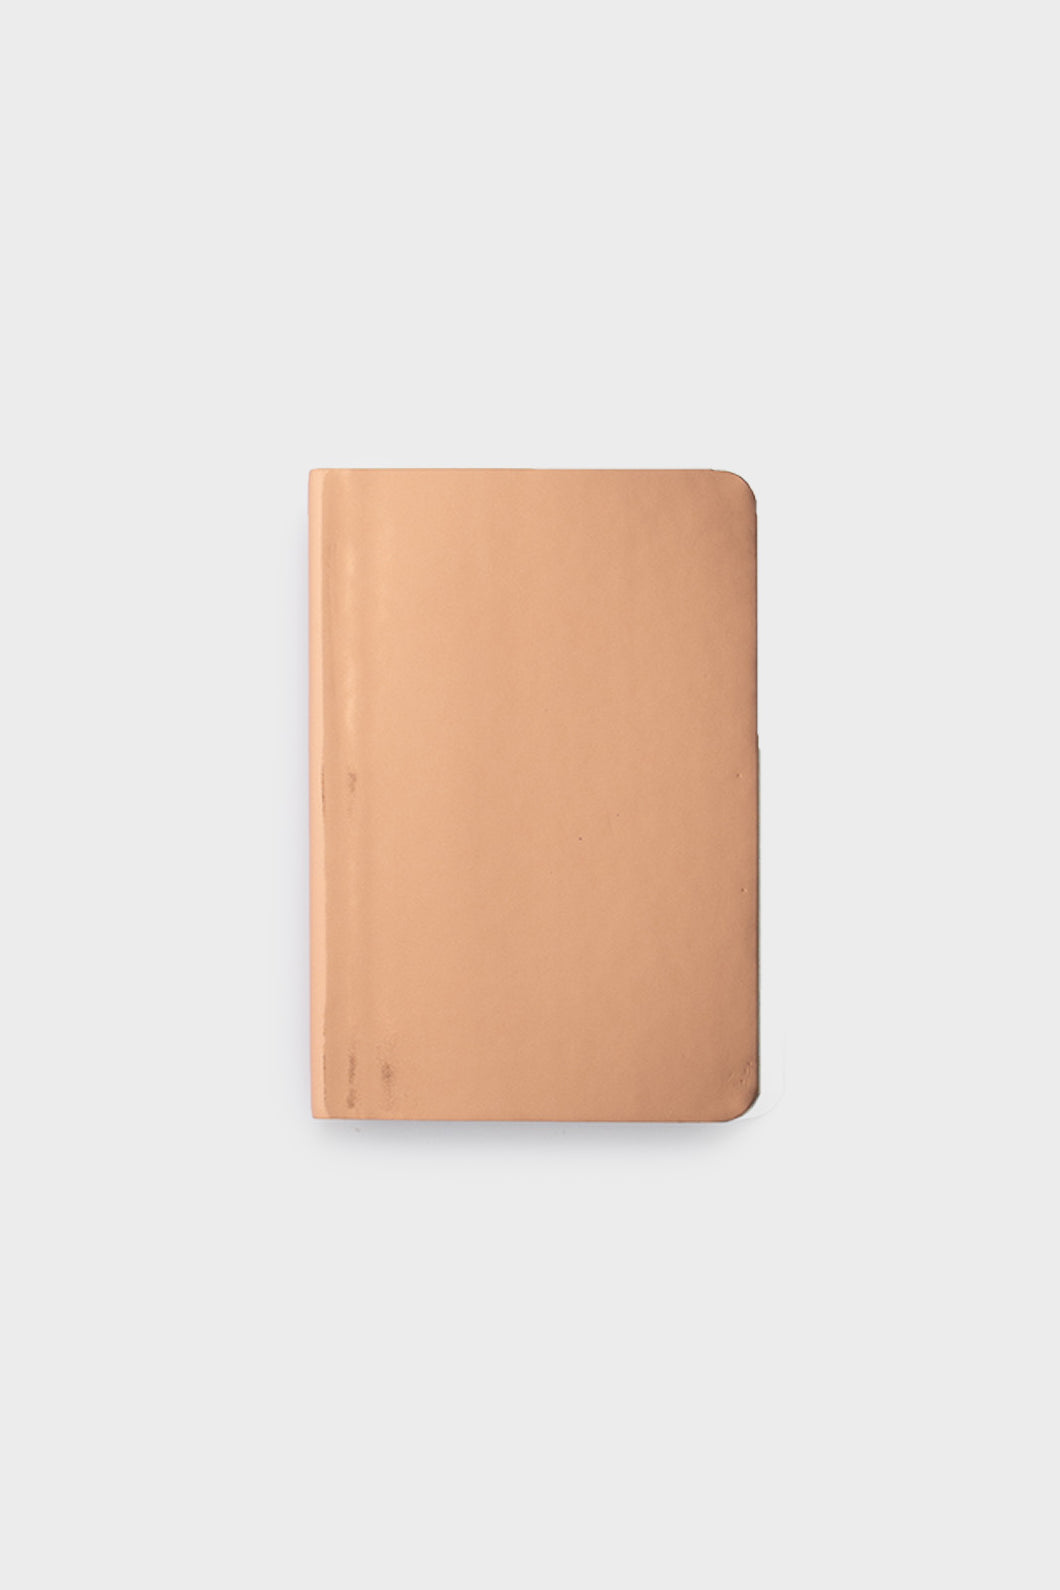 nuuna - Metallic Notebook - Mini Dot Grid - Small - Shiny Starlet Copper